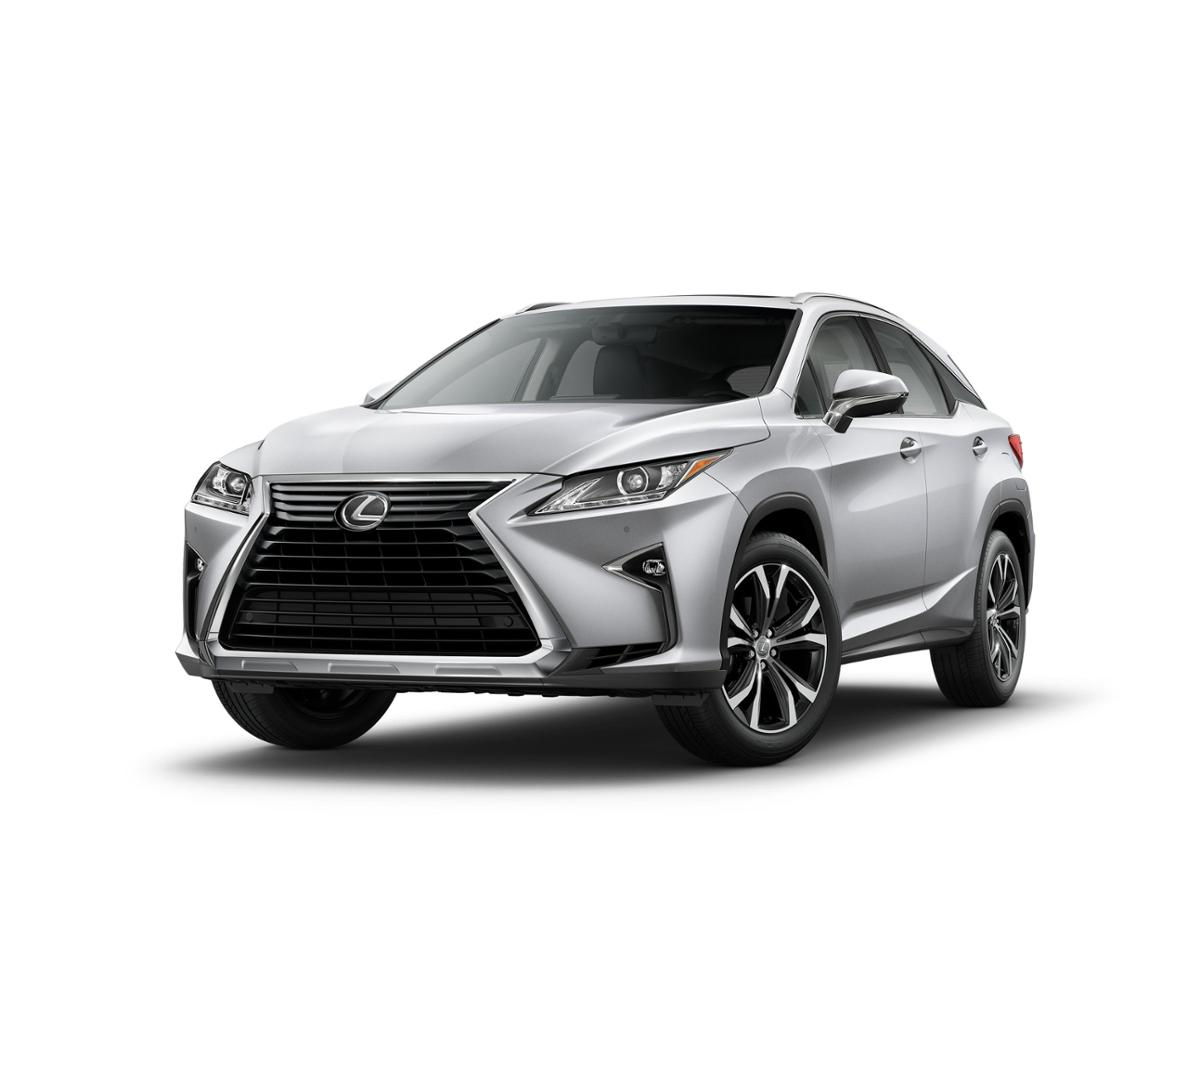 2017 Lexus RX 350 Vehicle Photo in Santa Monica, CA 90404